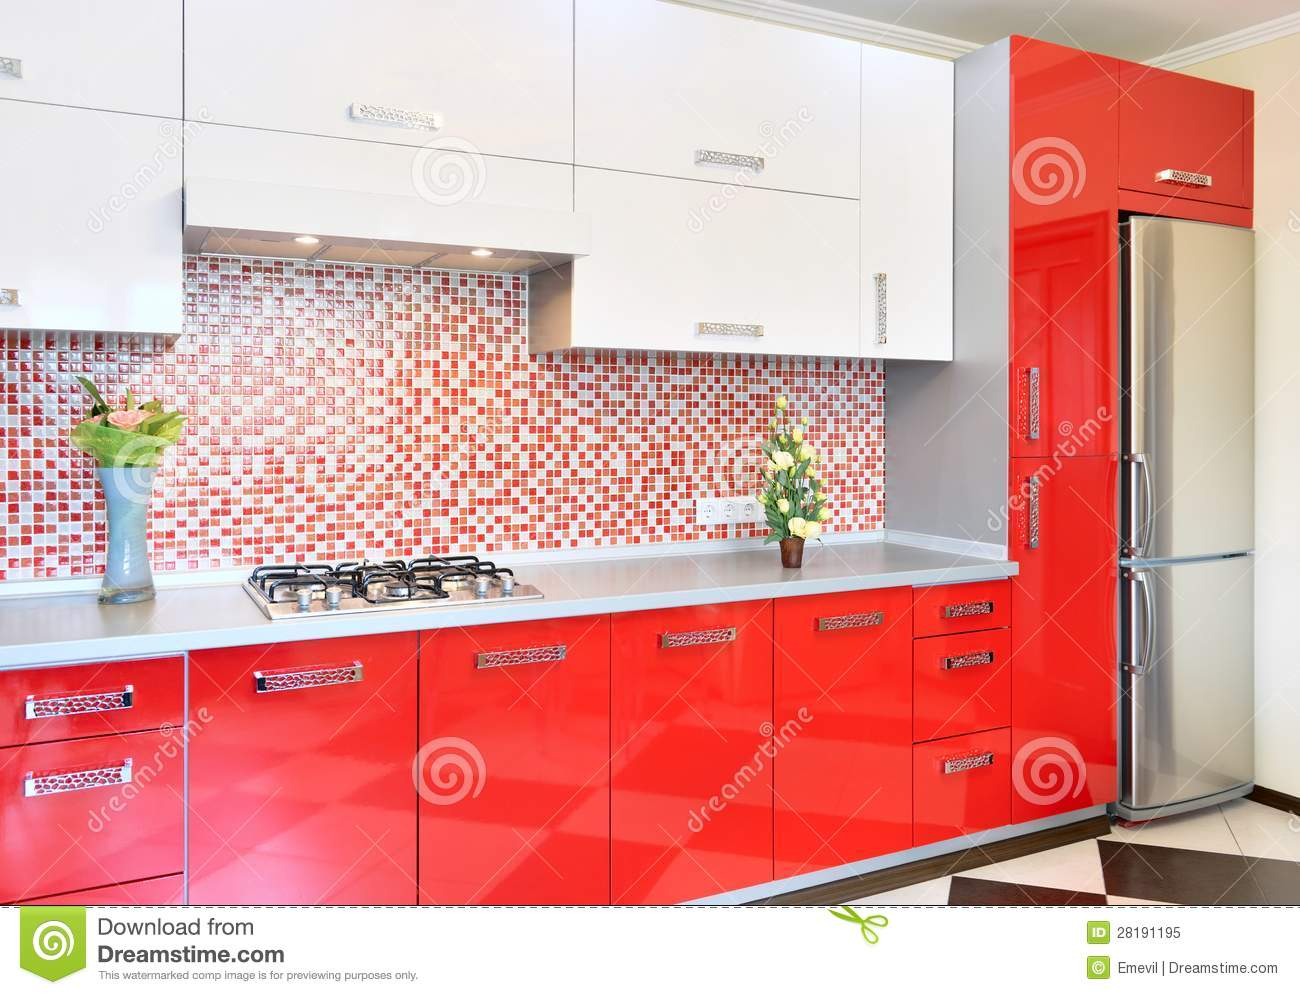 kitchen design red white kitchen and white stock image image of architecture 927